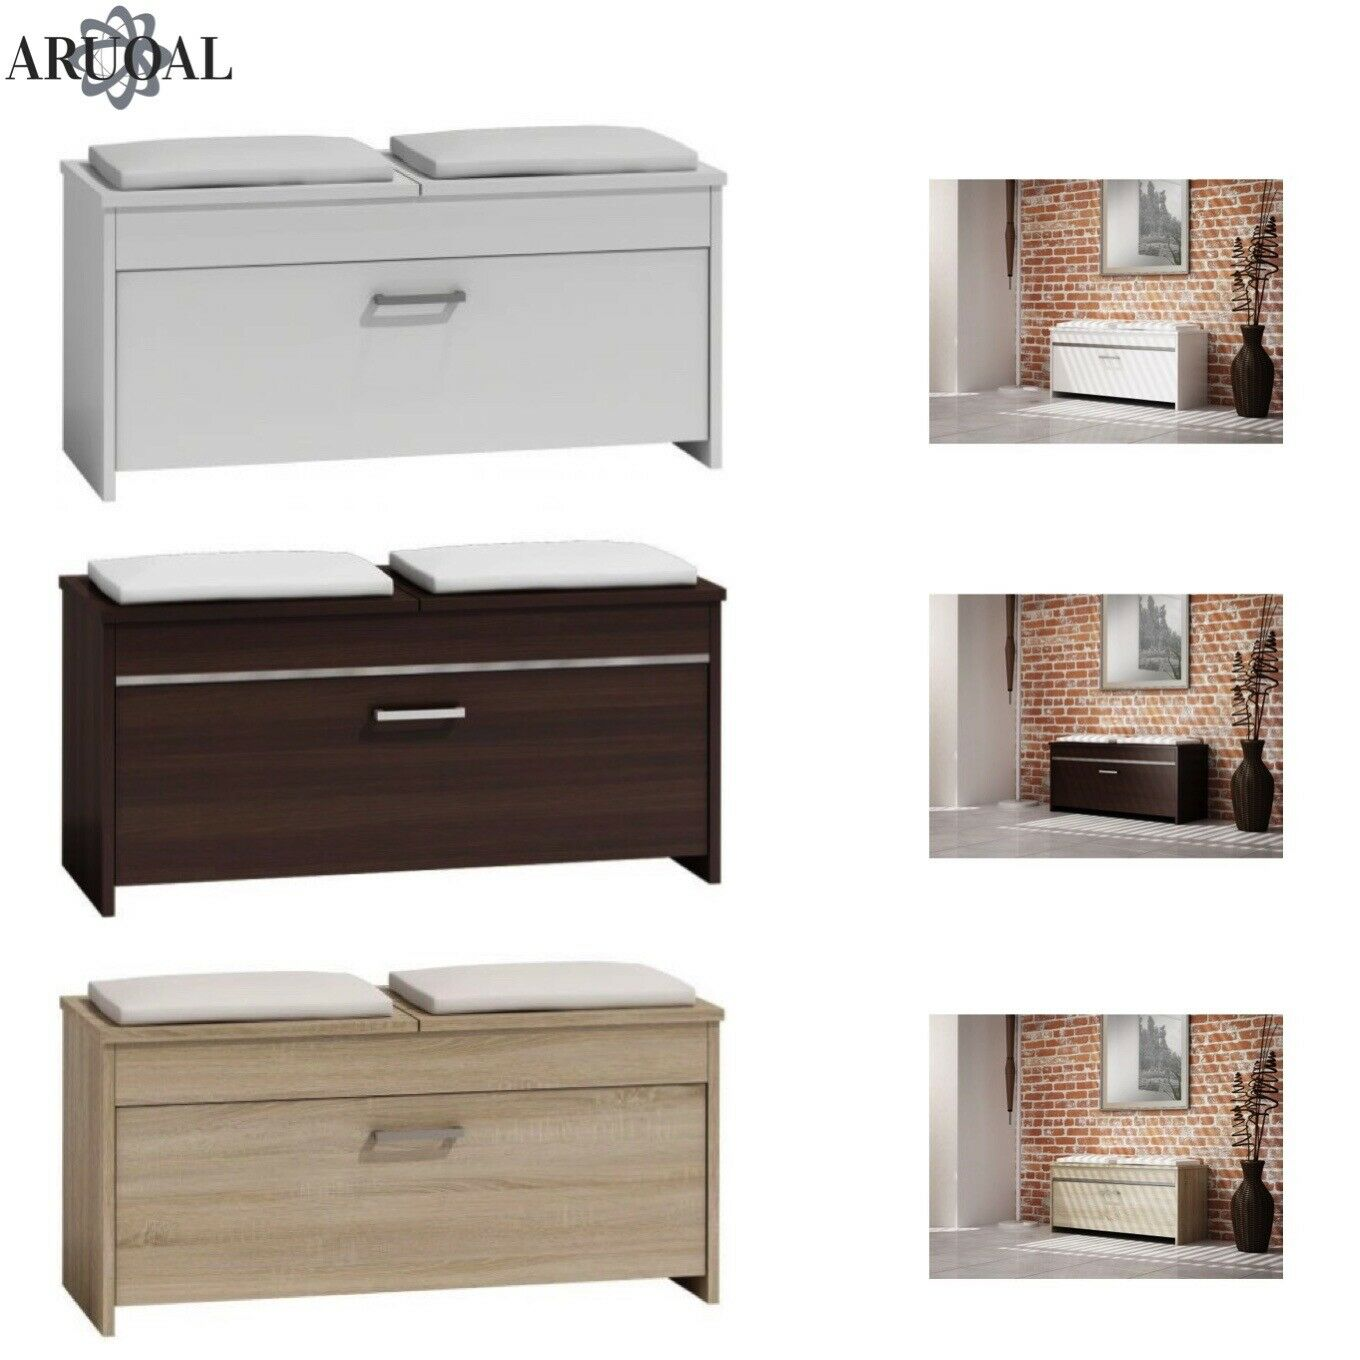 ARUOAL (ROMA) shoes Cabinet, Storage Box with Seat Various Colours 100 x 46 x 38